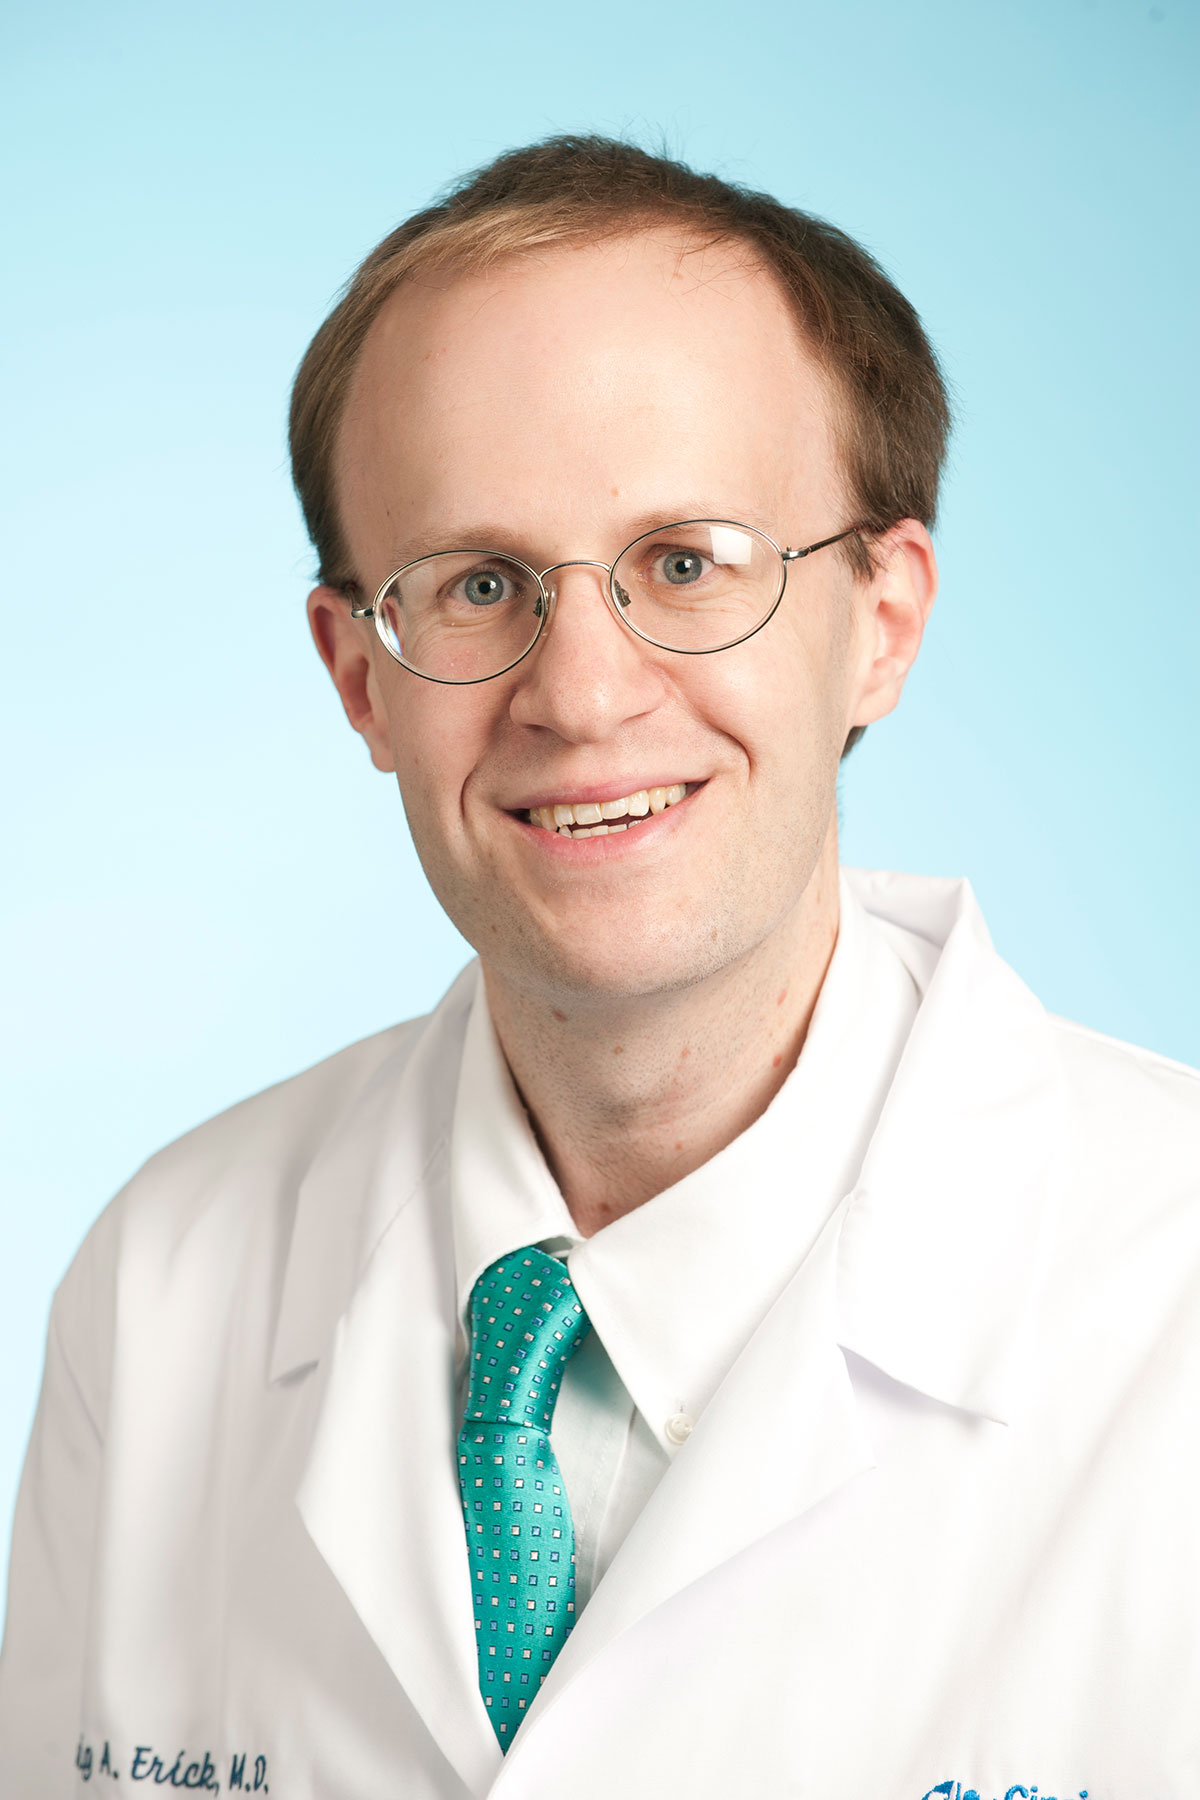 Craig Erickson, MD, Cincinnati Children's Hospital